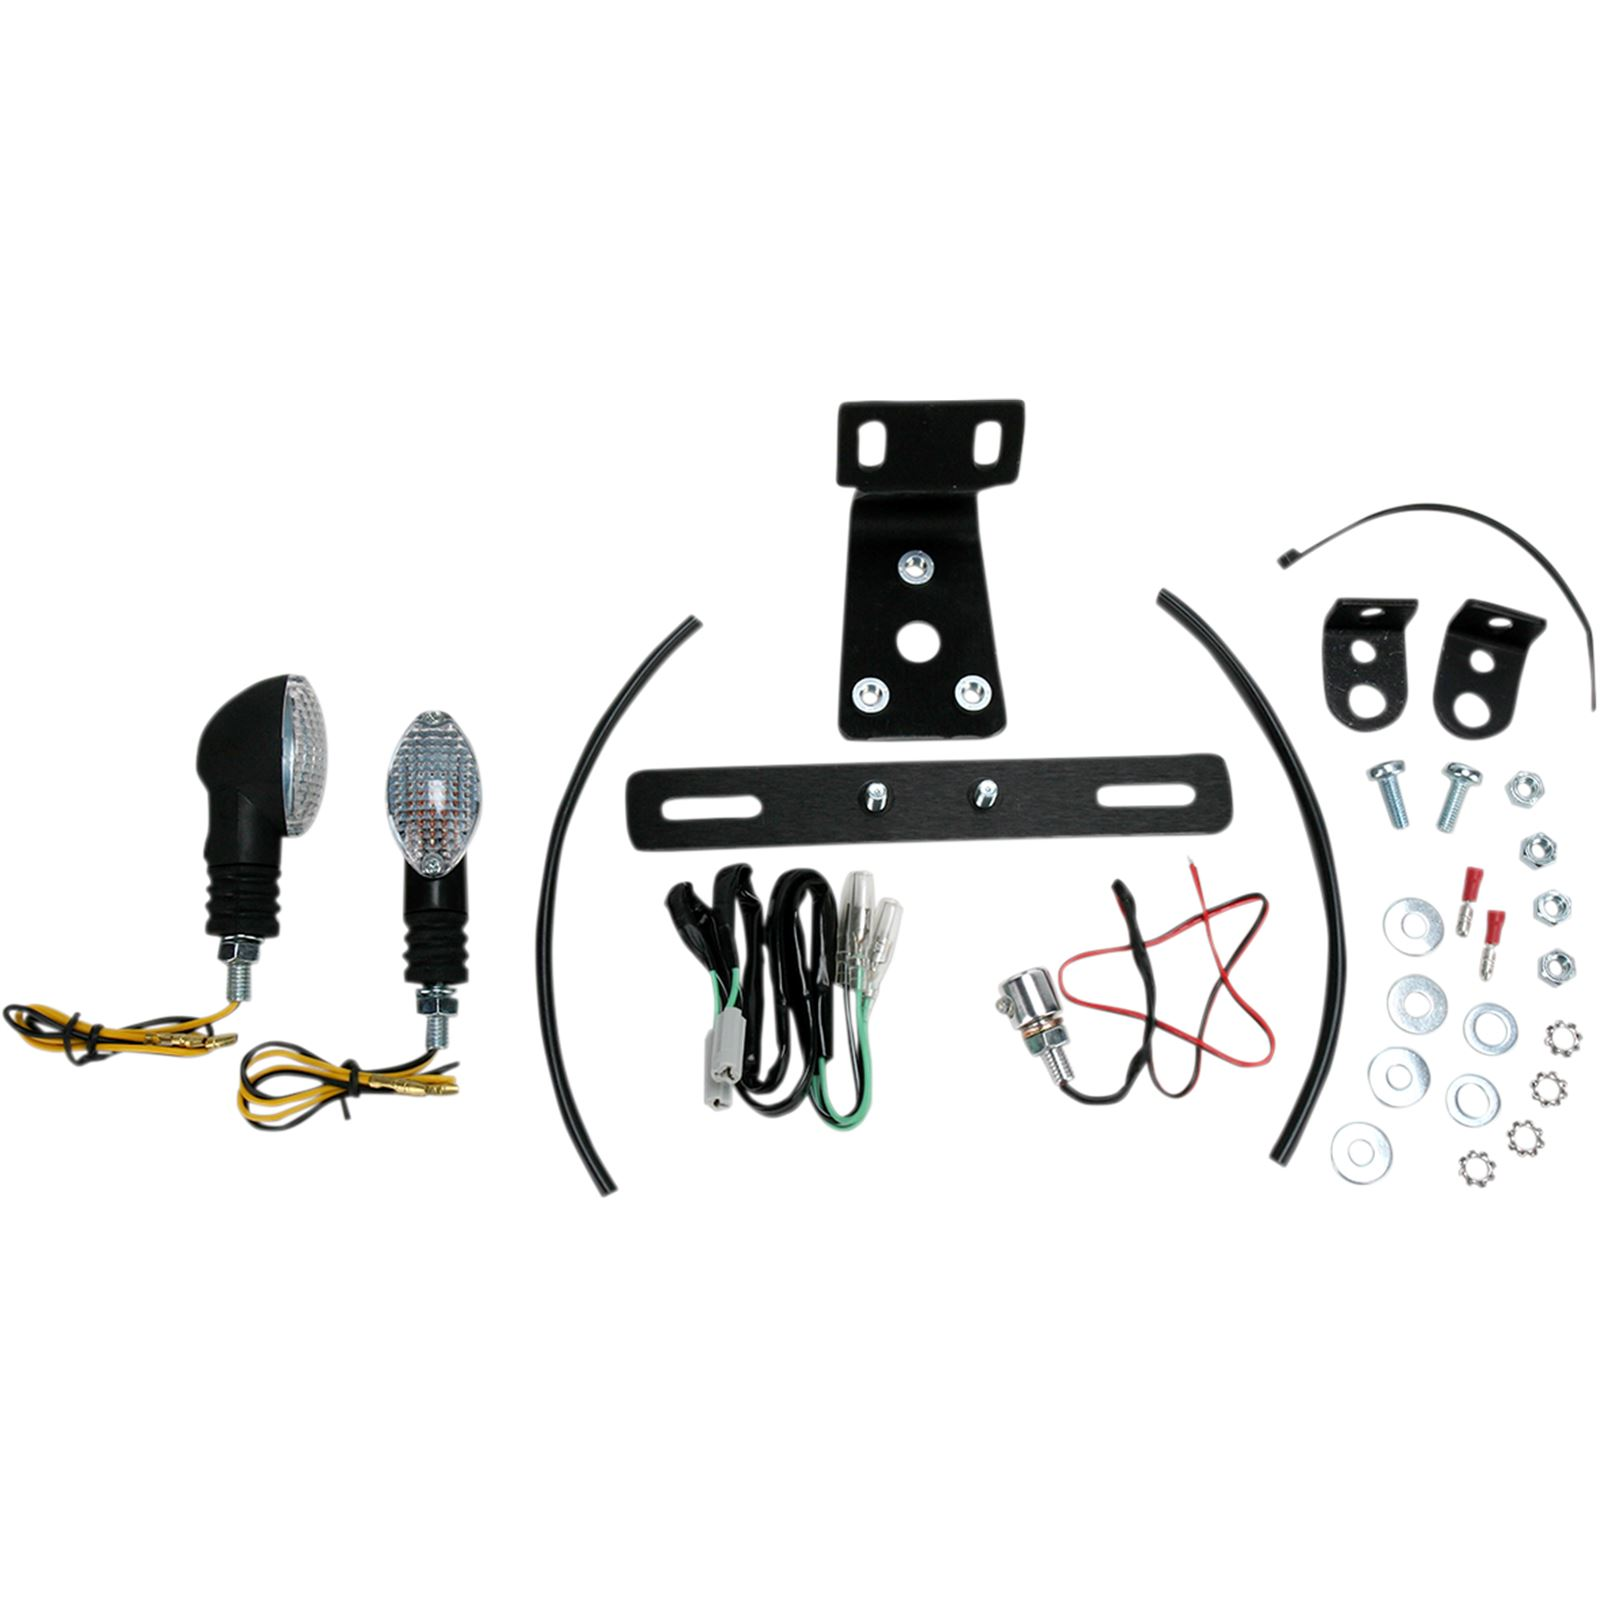 Targa Tail Kit with Signals - YZFR1 '09-'14